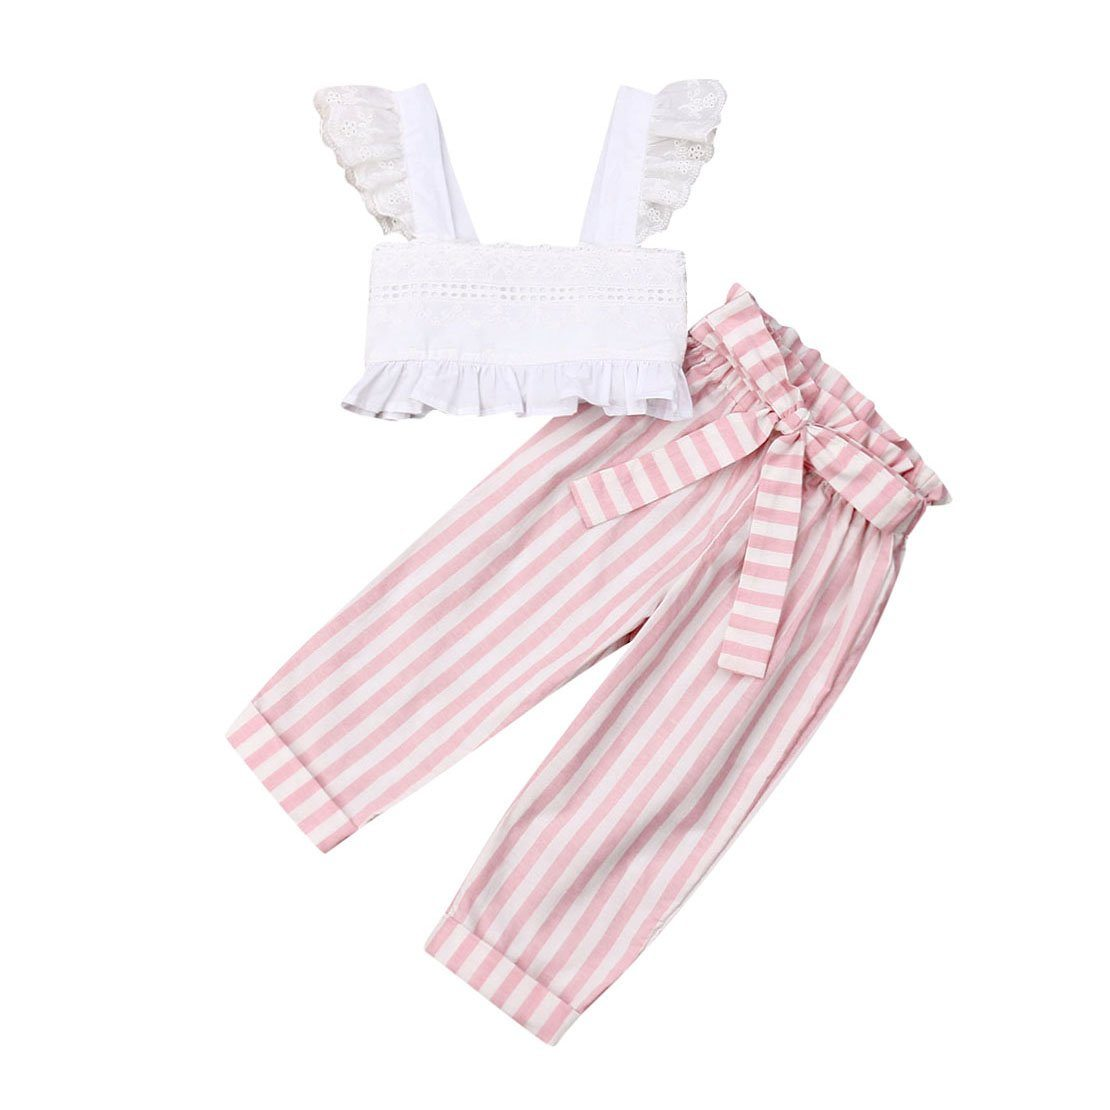 Pink Striped Set - The Trendy Toddlers